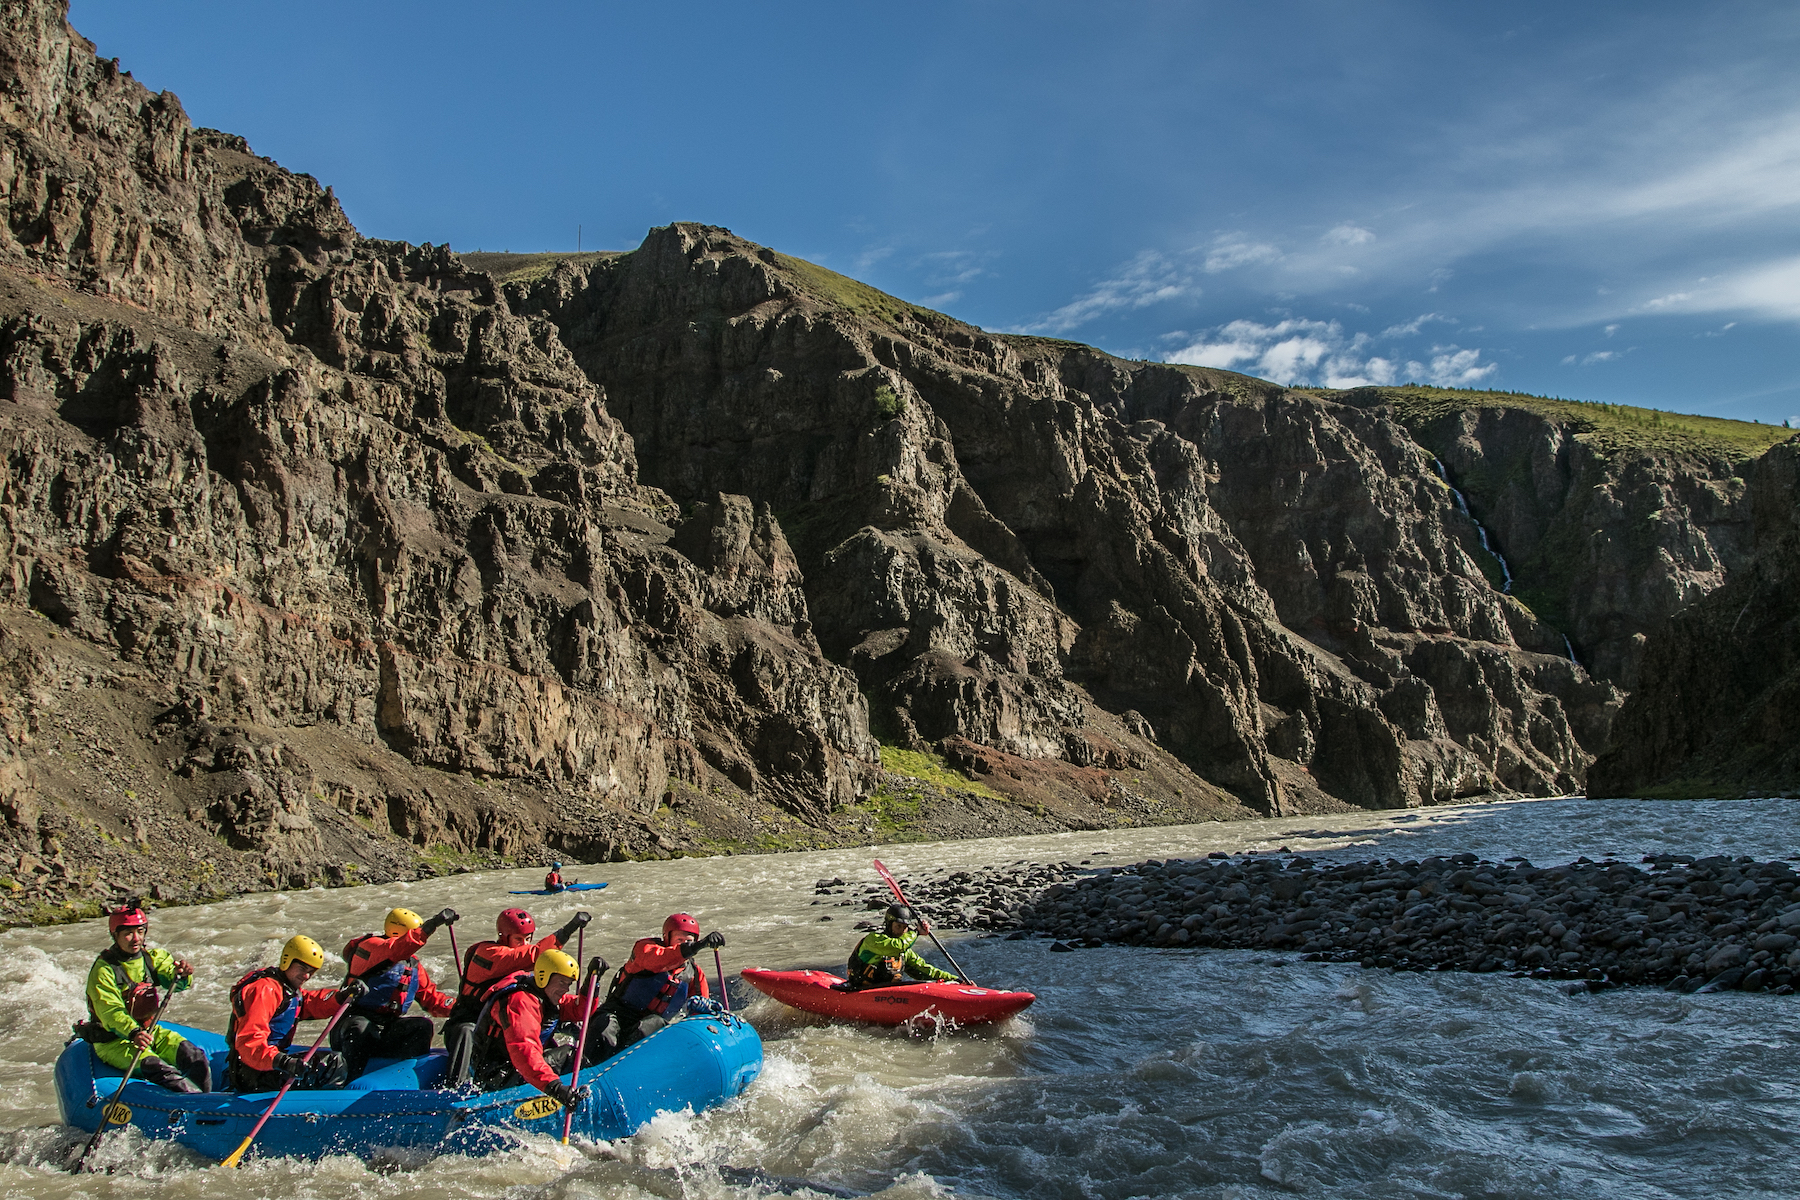 White Water Rafting - Viking Rafting Andy Kettlewell/ Pistyll Productions